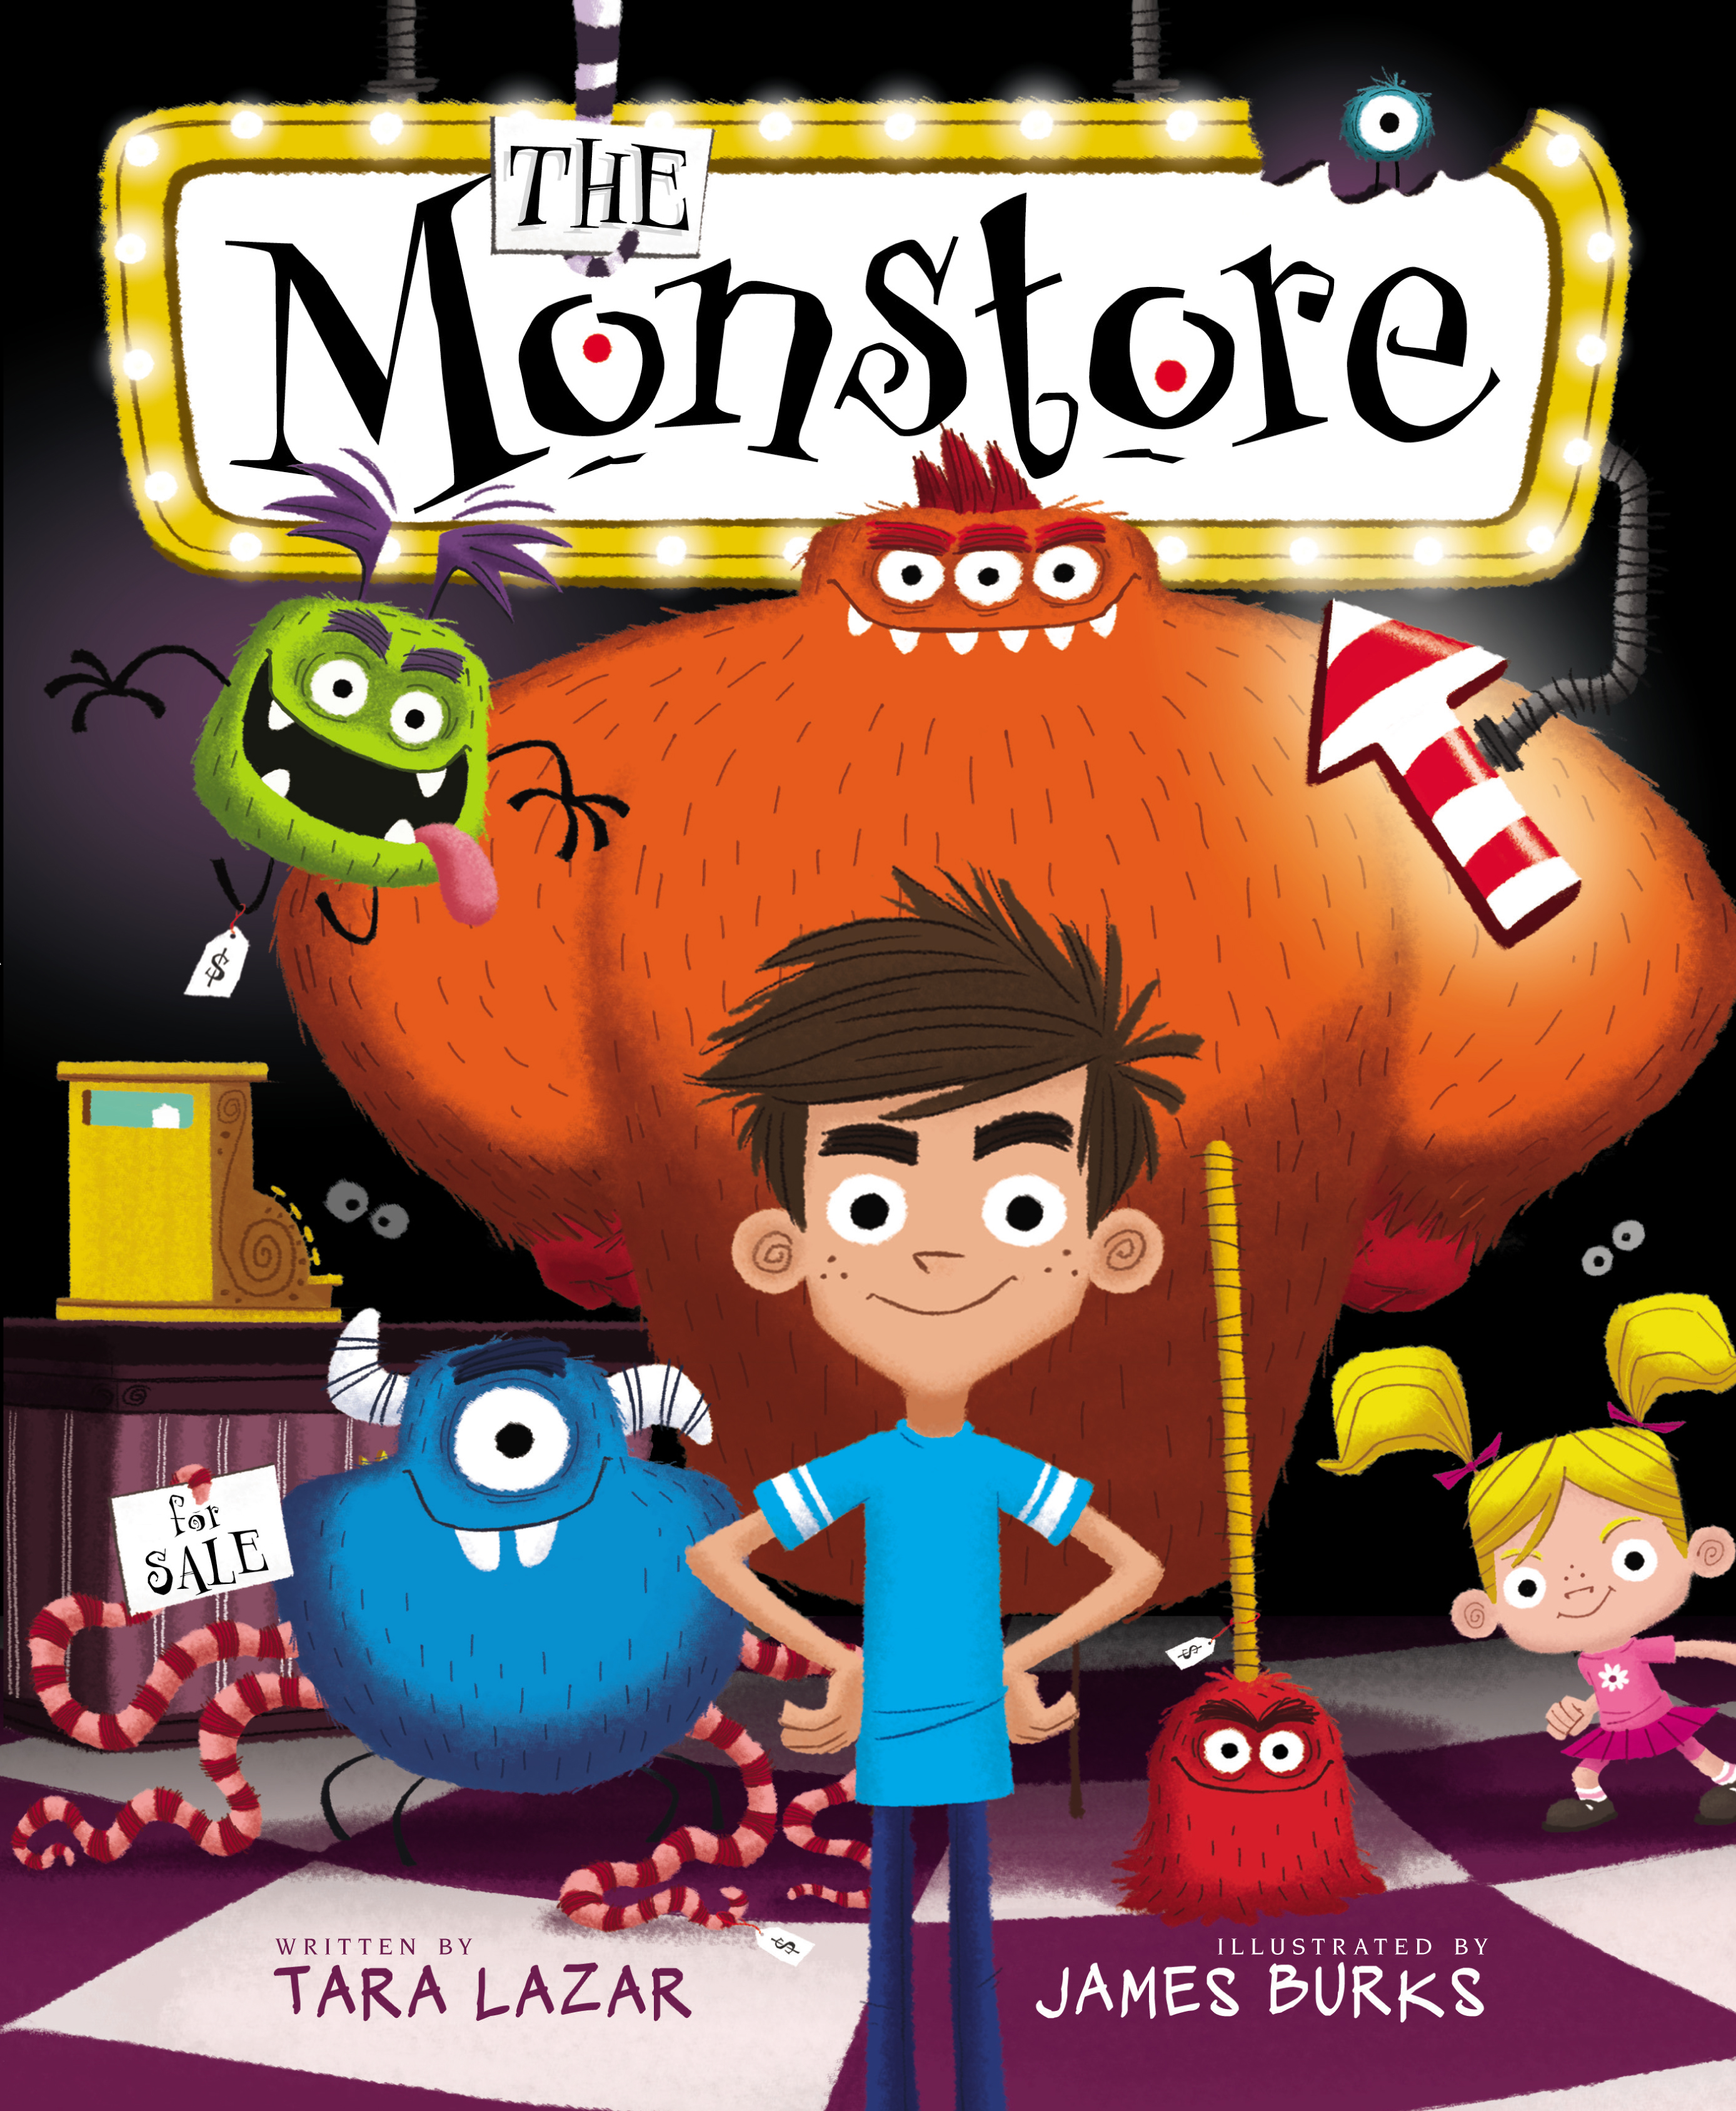 Tara-Lazar-Monstore-book-cover